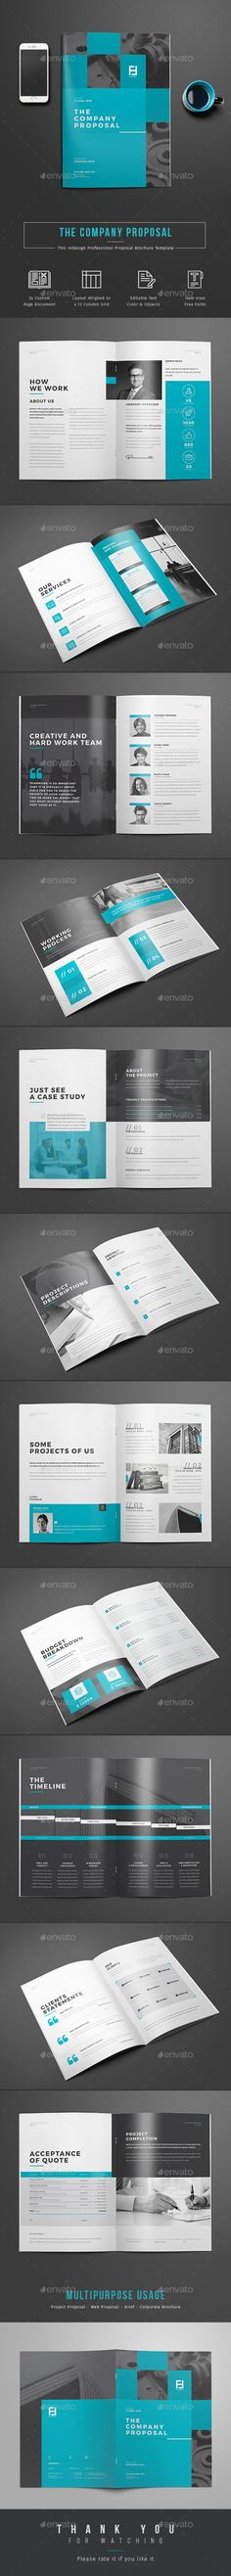 Sponsorship Proposal Proposal templates, Proposals and Template - best proposal templates